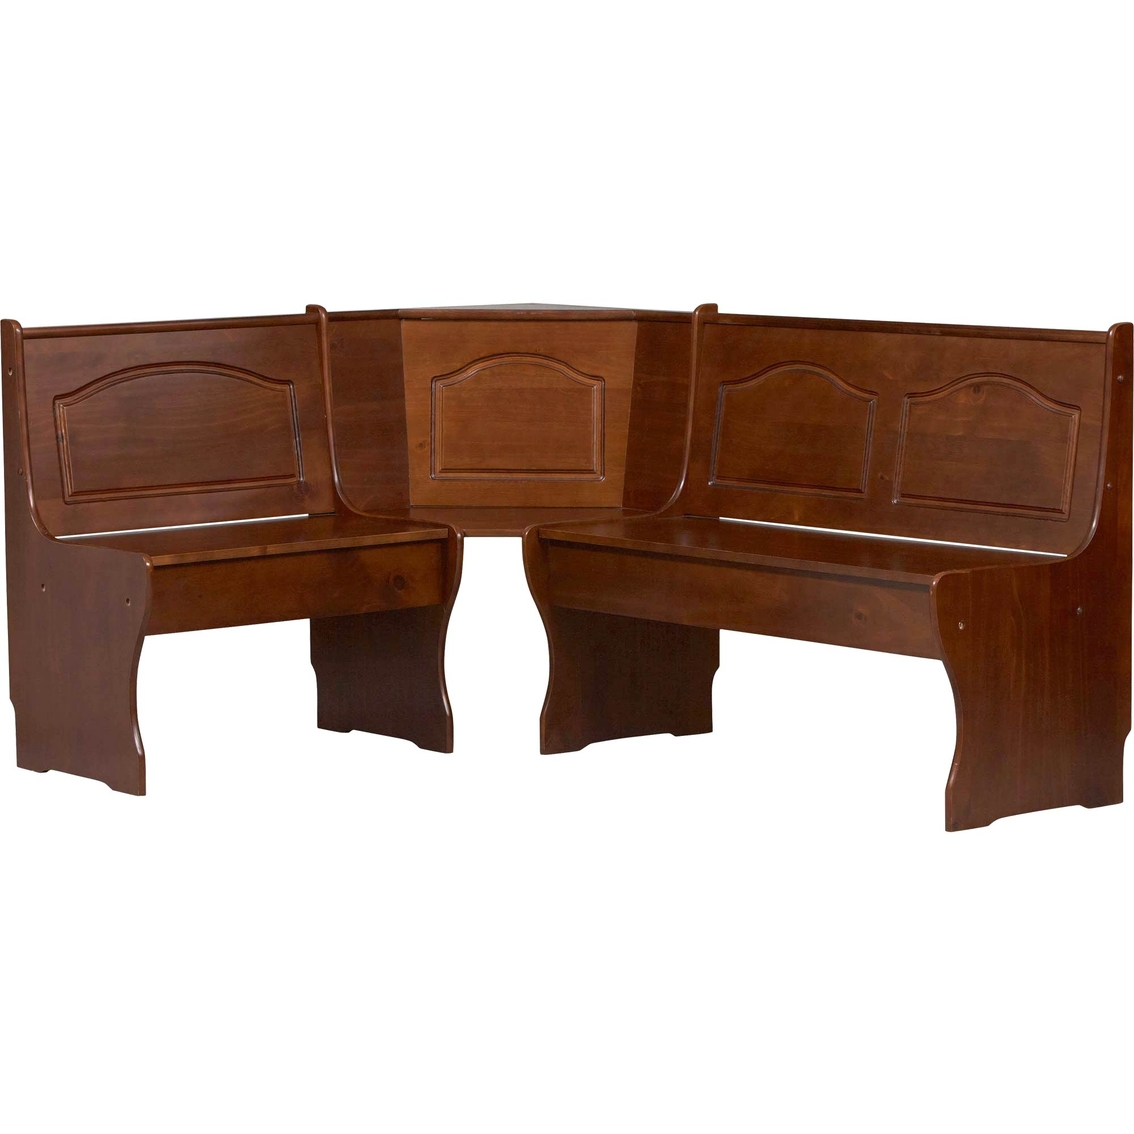 Nook Dining Tables Chelsea Dining Nook With Nook Dining: Linon Chelsea Corner Breakfast Nook Side Bench